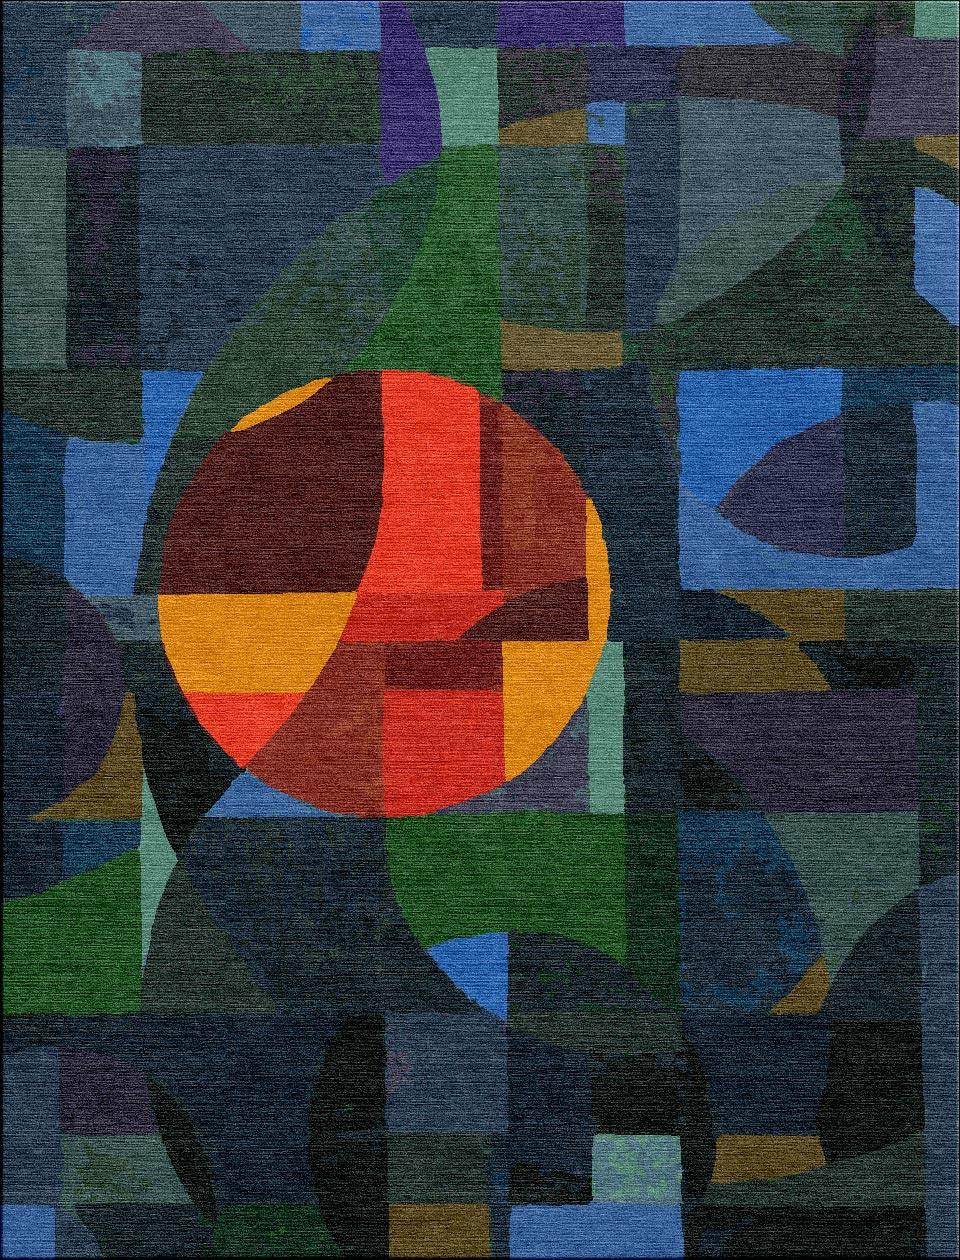 Visualization of the carpet 'untitled' shown in colour Moody Blue by Michael Christie - Based on the original.   Image from The Ruggist